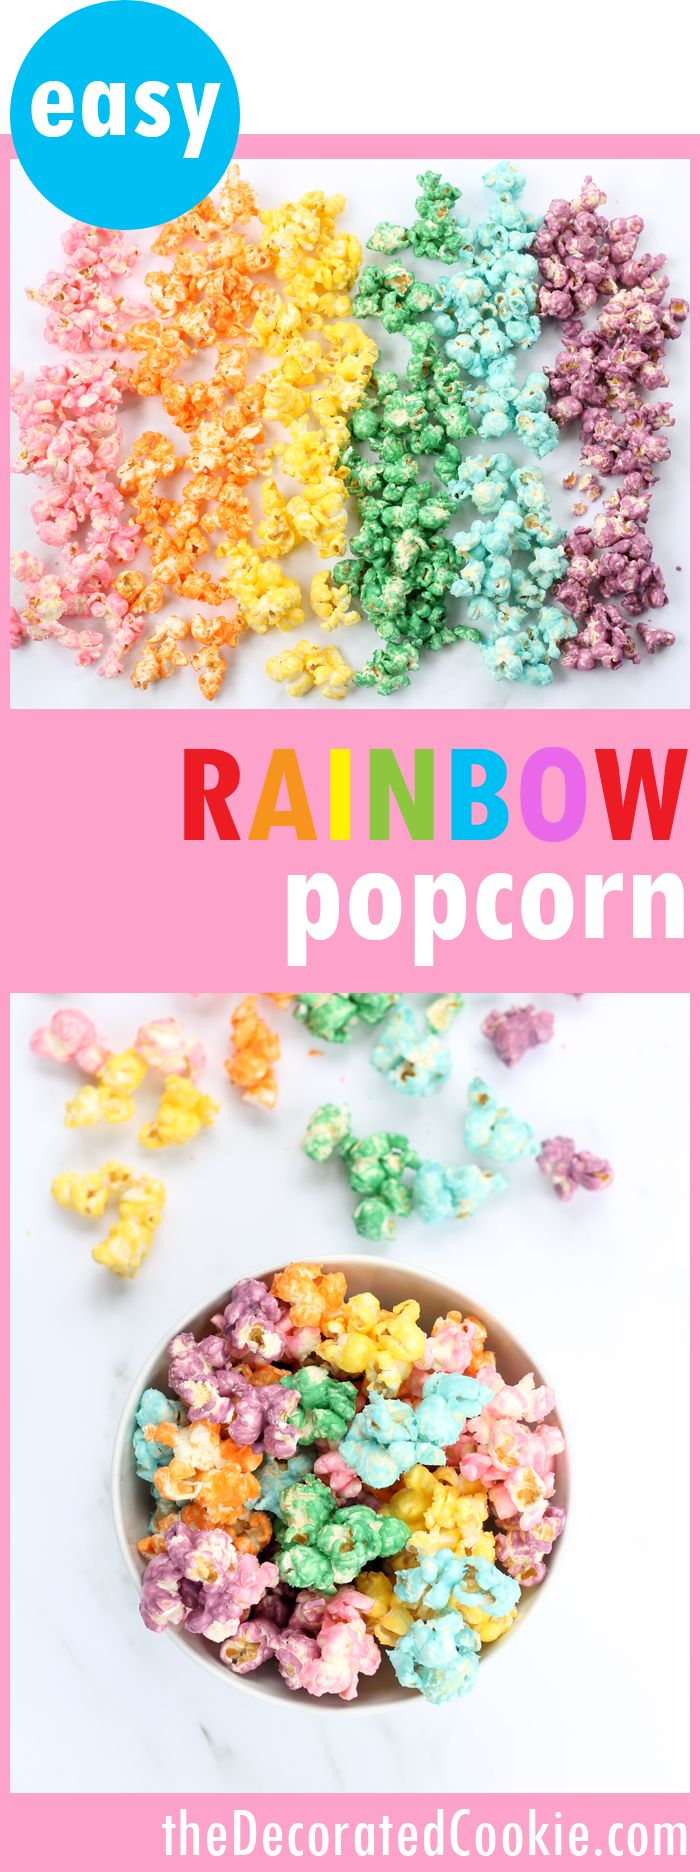 Easy, colorful RAINBOW POPCORN! Fun food idea for a rainbow party or a unicorn party. Colorful candy snack or treat.